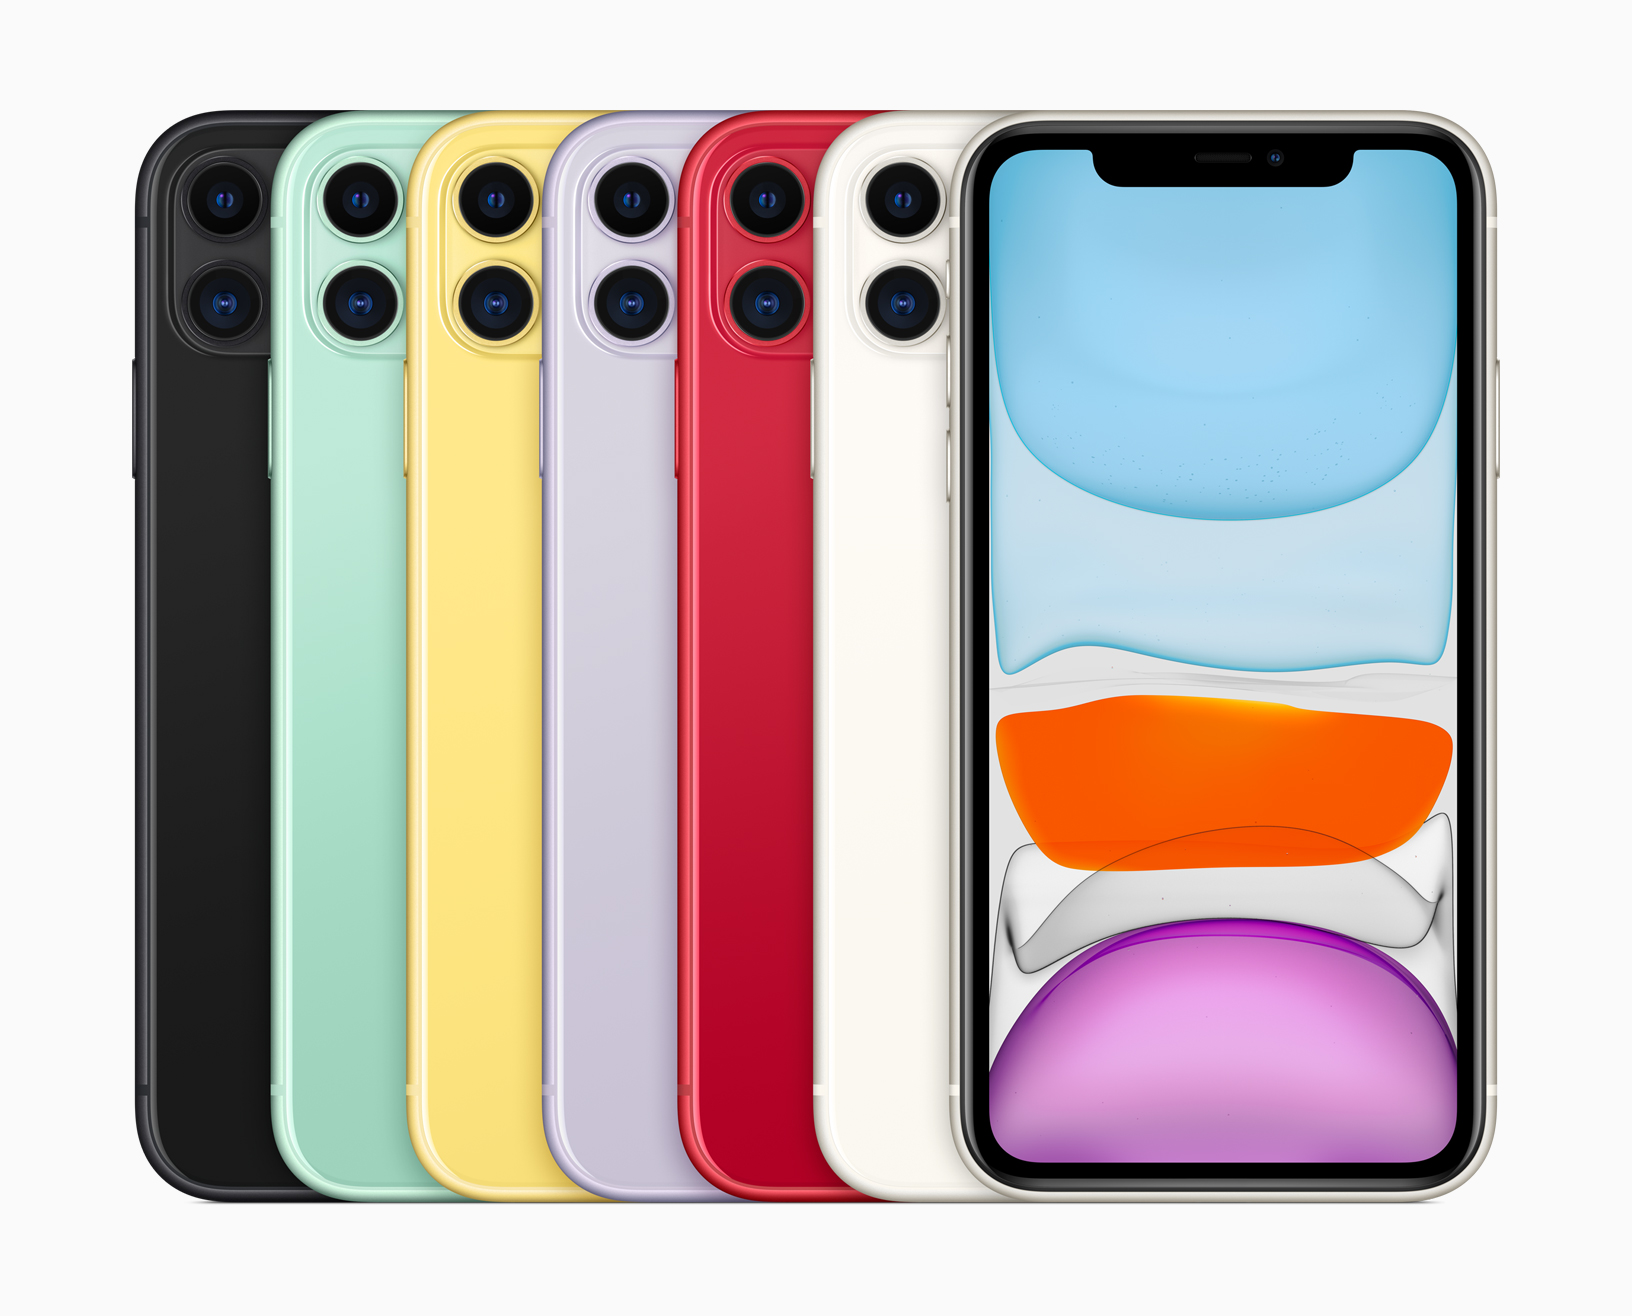 The back glass on iPhone 11 is precision milled from a single sheet of glass — the toughest glass ever in a smartphone. (Image via Apple)